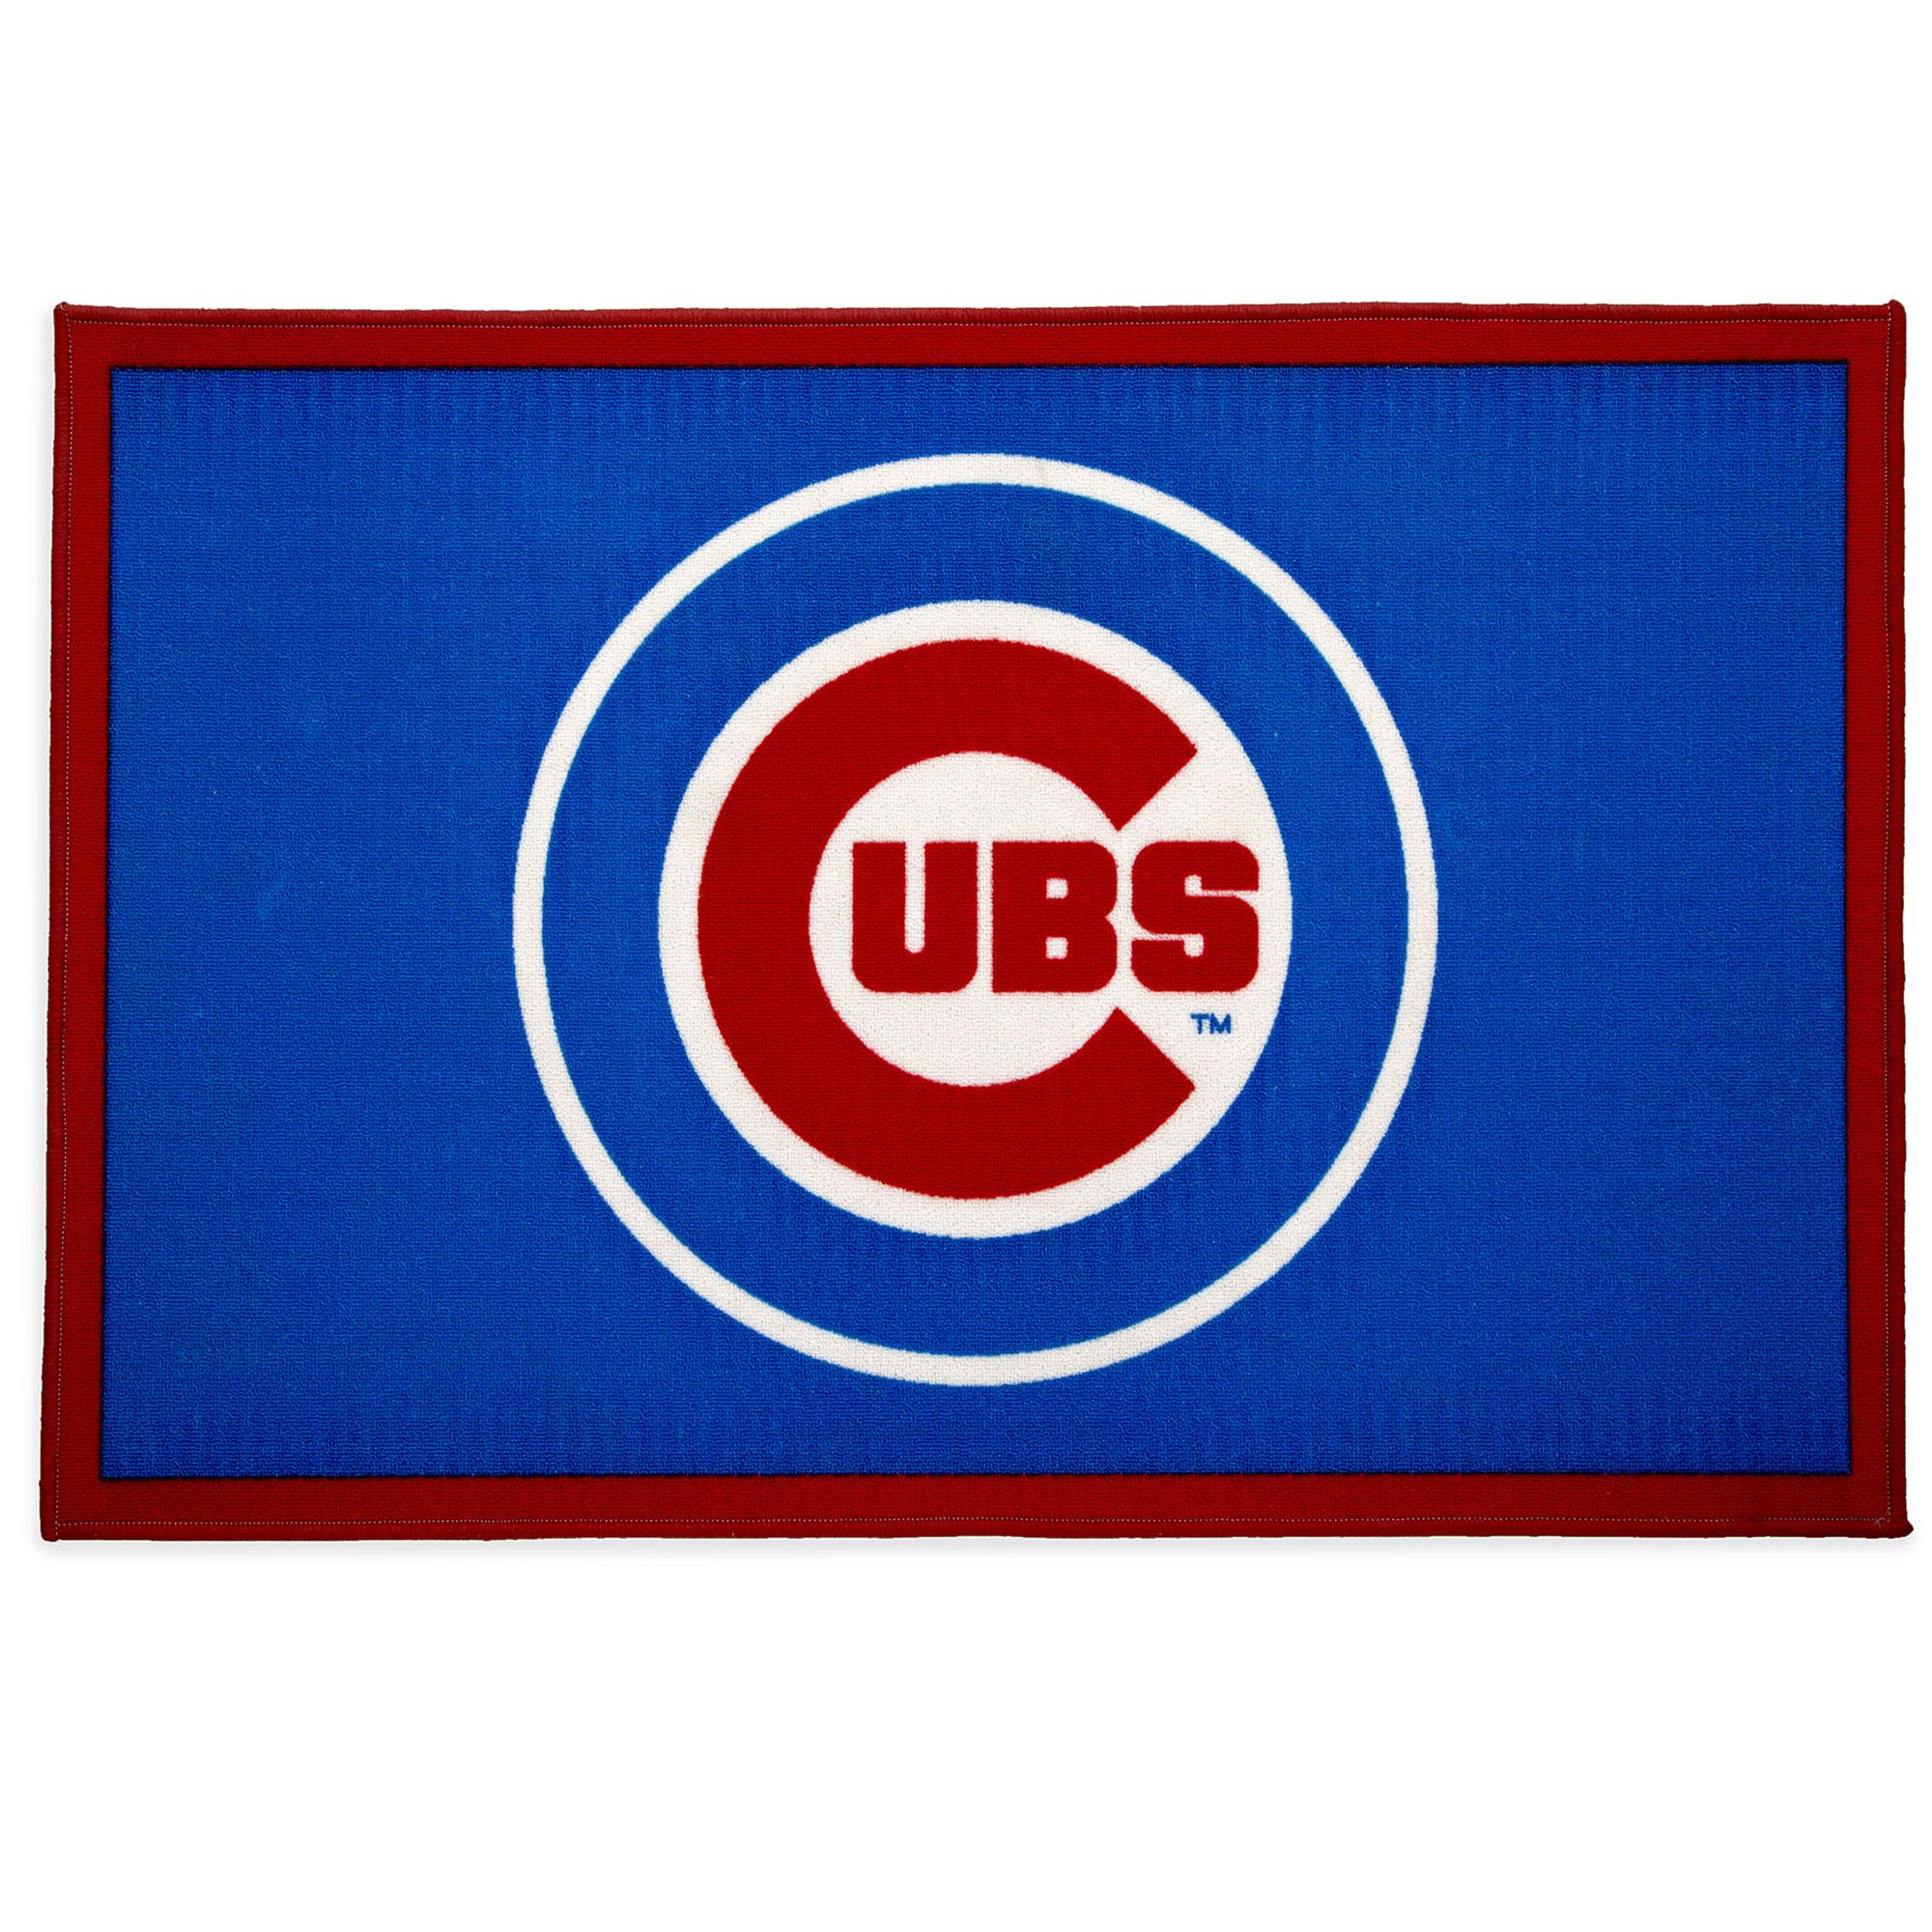 Sports & Outdoors Delta children, Chicago cubs, Red area rug